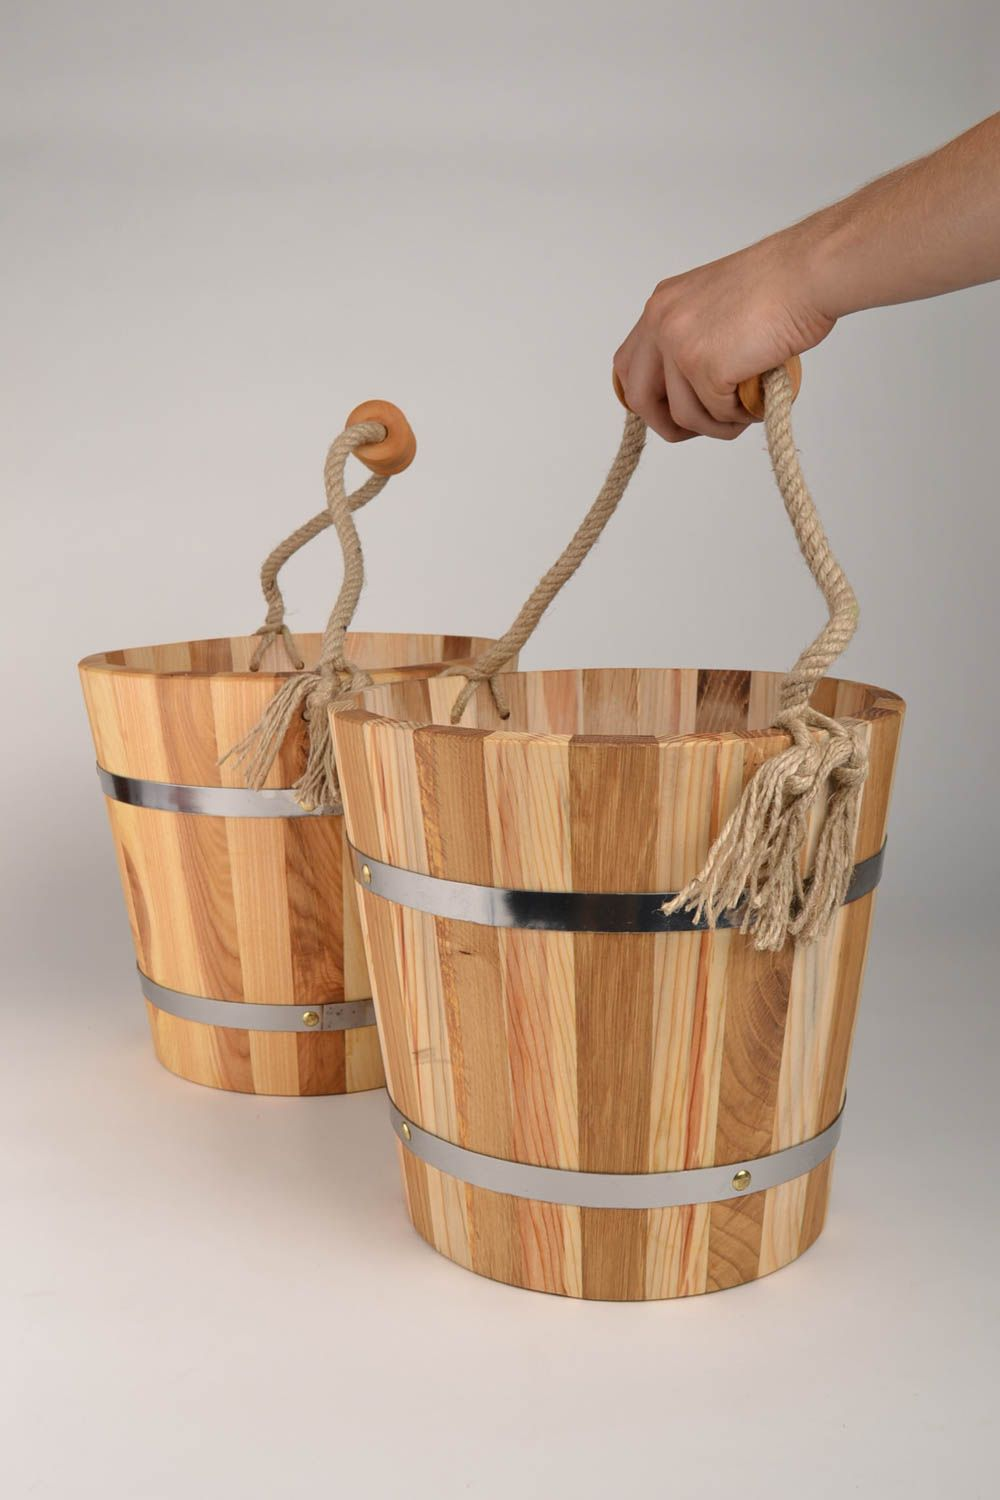 bath accessories Handmade wooden bucket for sauna bath accessories sauna bucket present for men - MADEheart.com